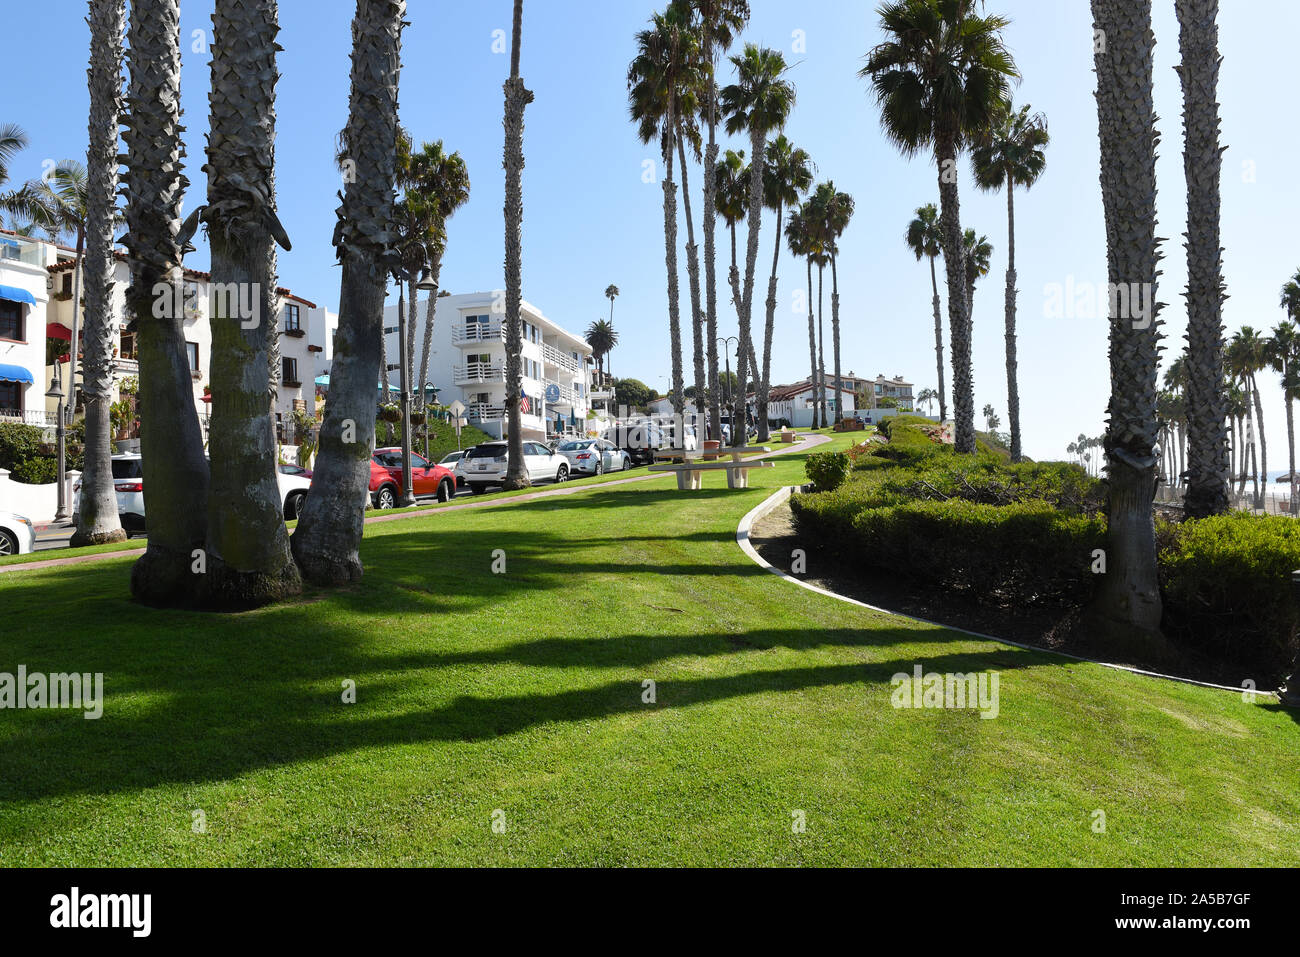 SAN CLEMENTE-, CALIFORNIA - 18 OCT 2019: Park along Avenida Victoria with apartments and shops in the Orange County Beach Town. Stock Photo